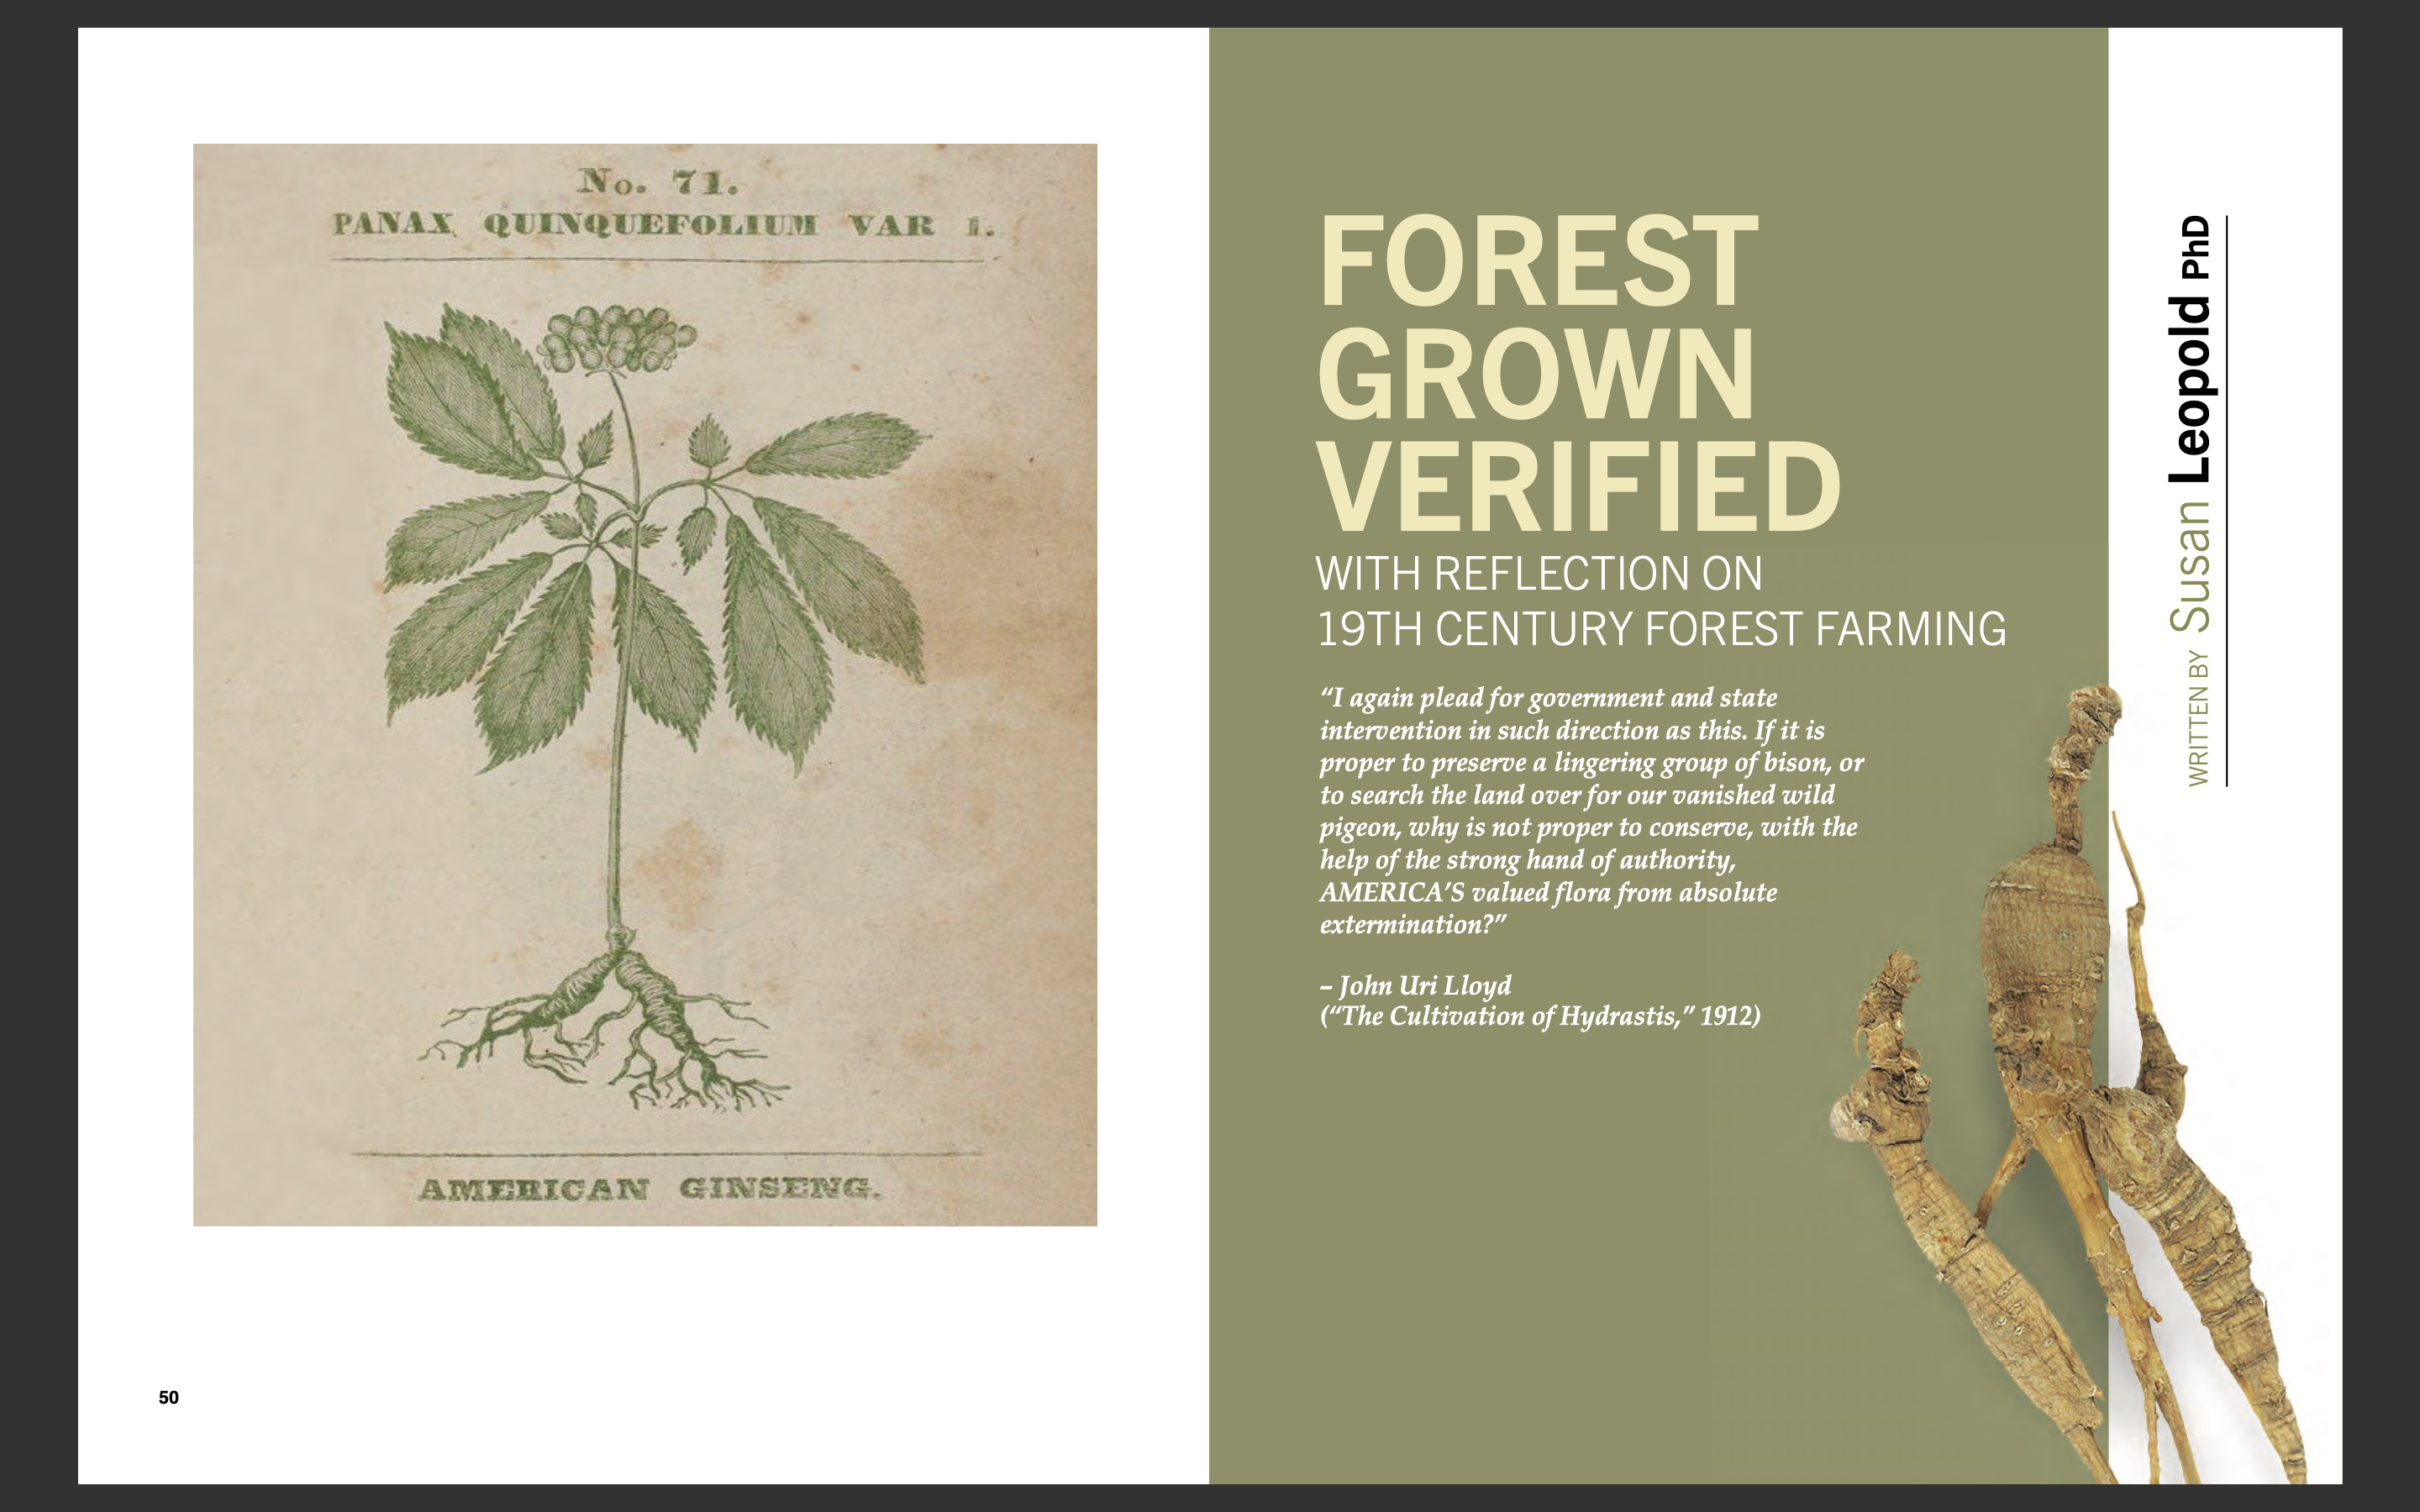 Forest Grown Verified with Reflection on 19th Century Forest Farming